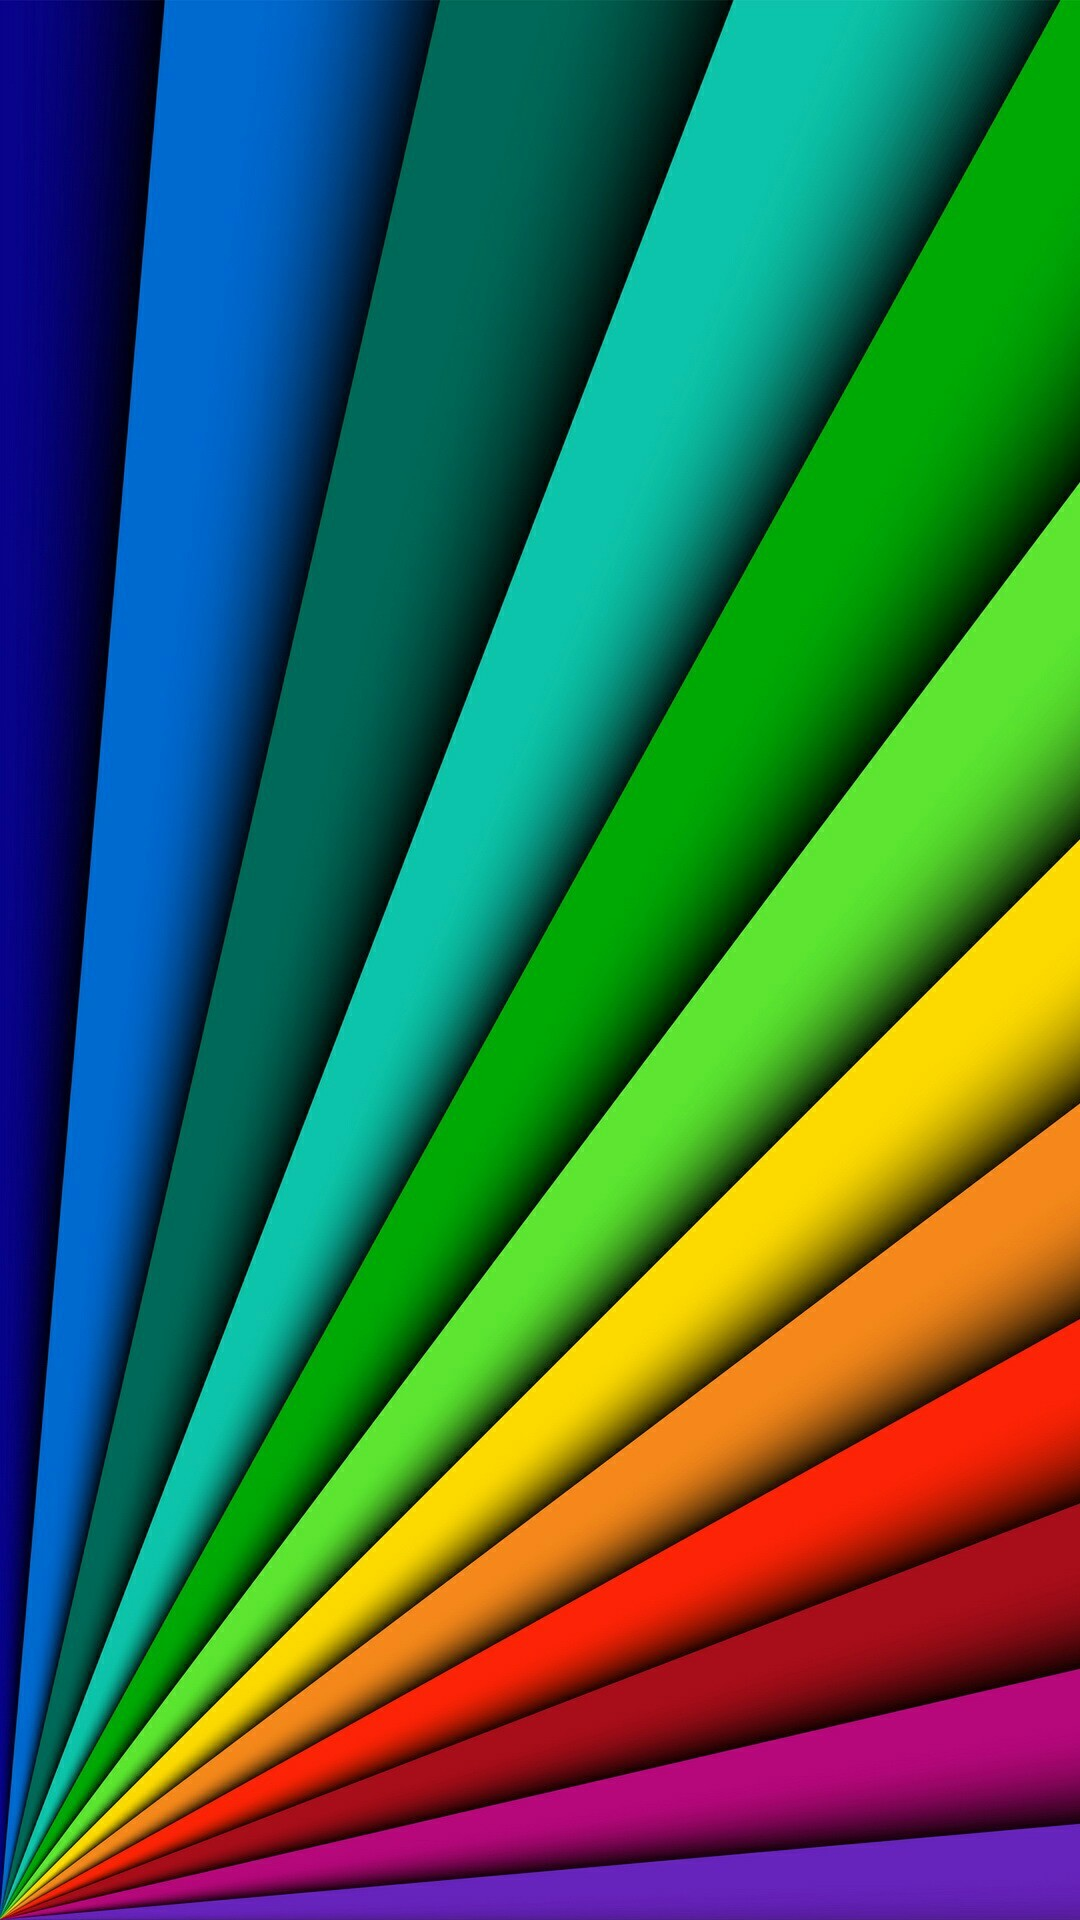 1080x1920 Fanned Out Primary Colors Wallpaper